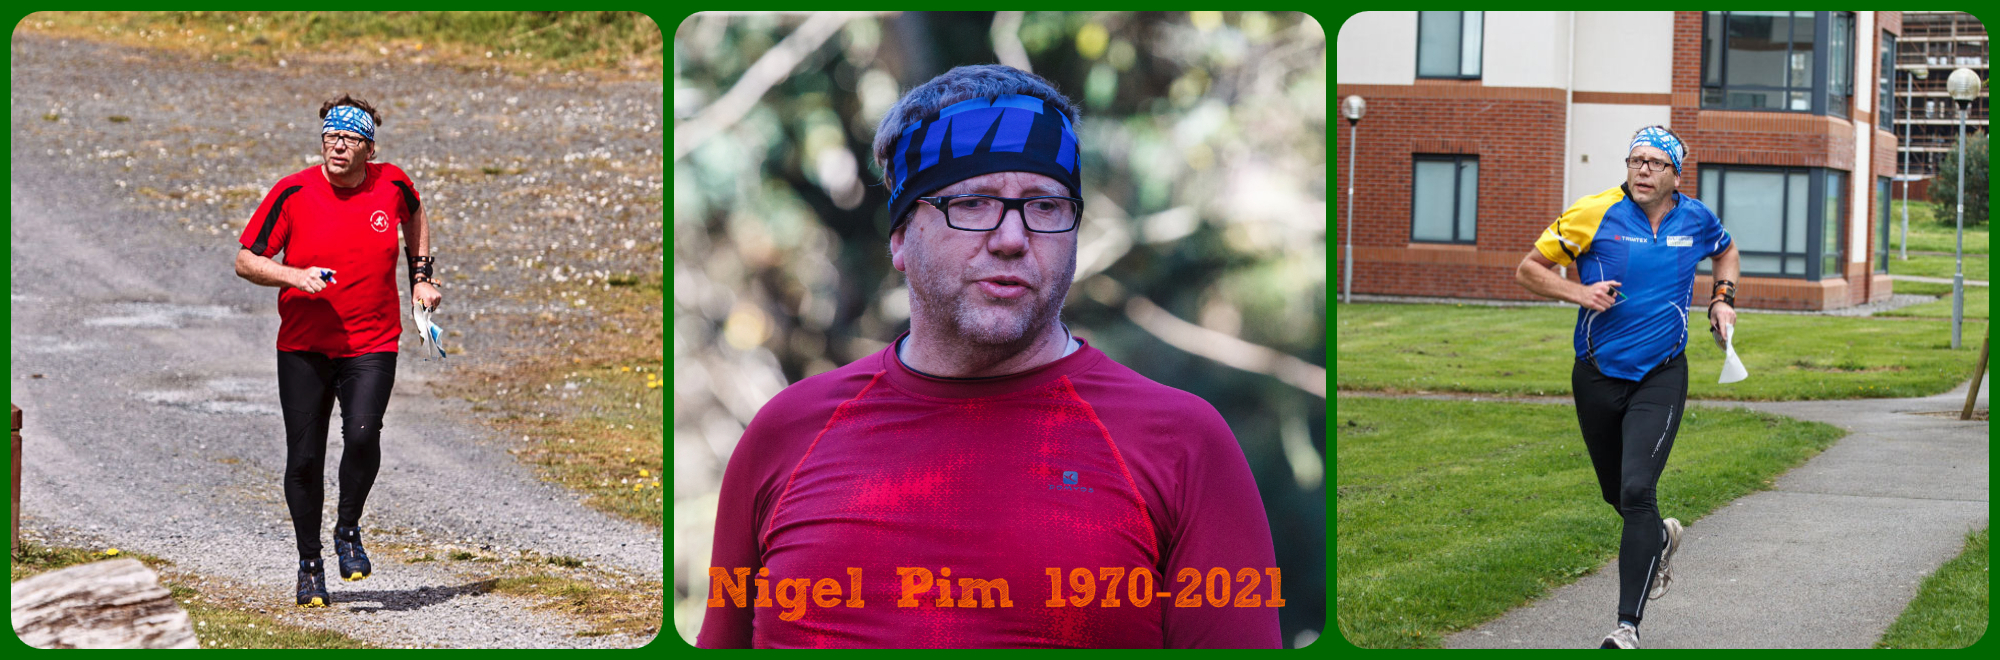 A True Family Man in a Family Sport- Nigel Pim